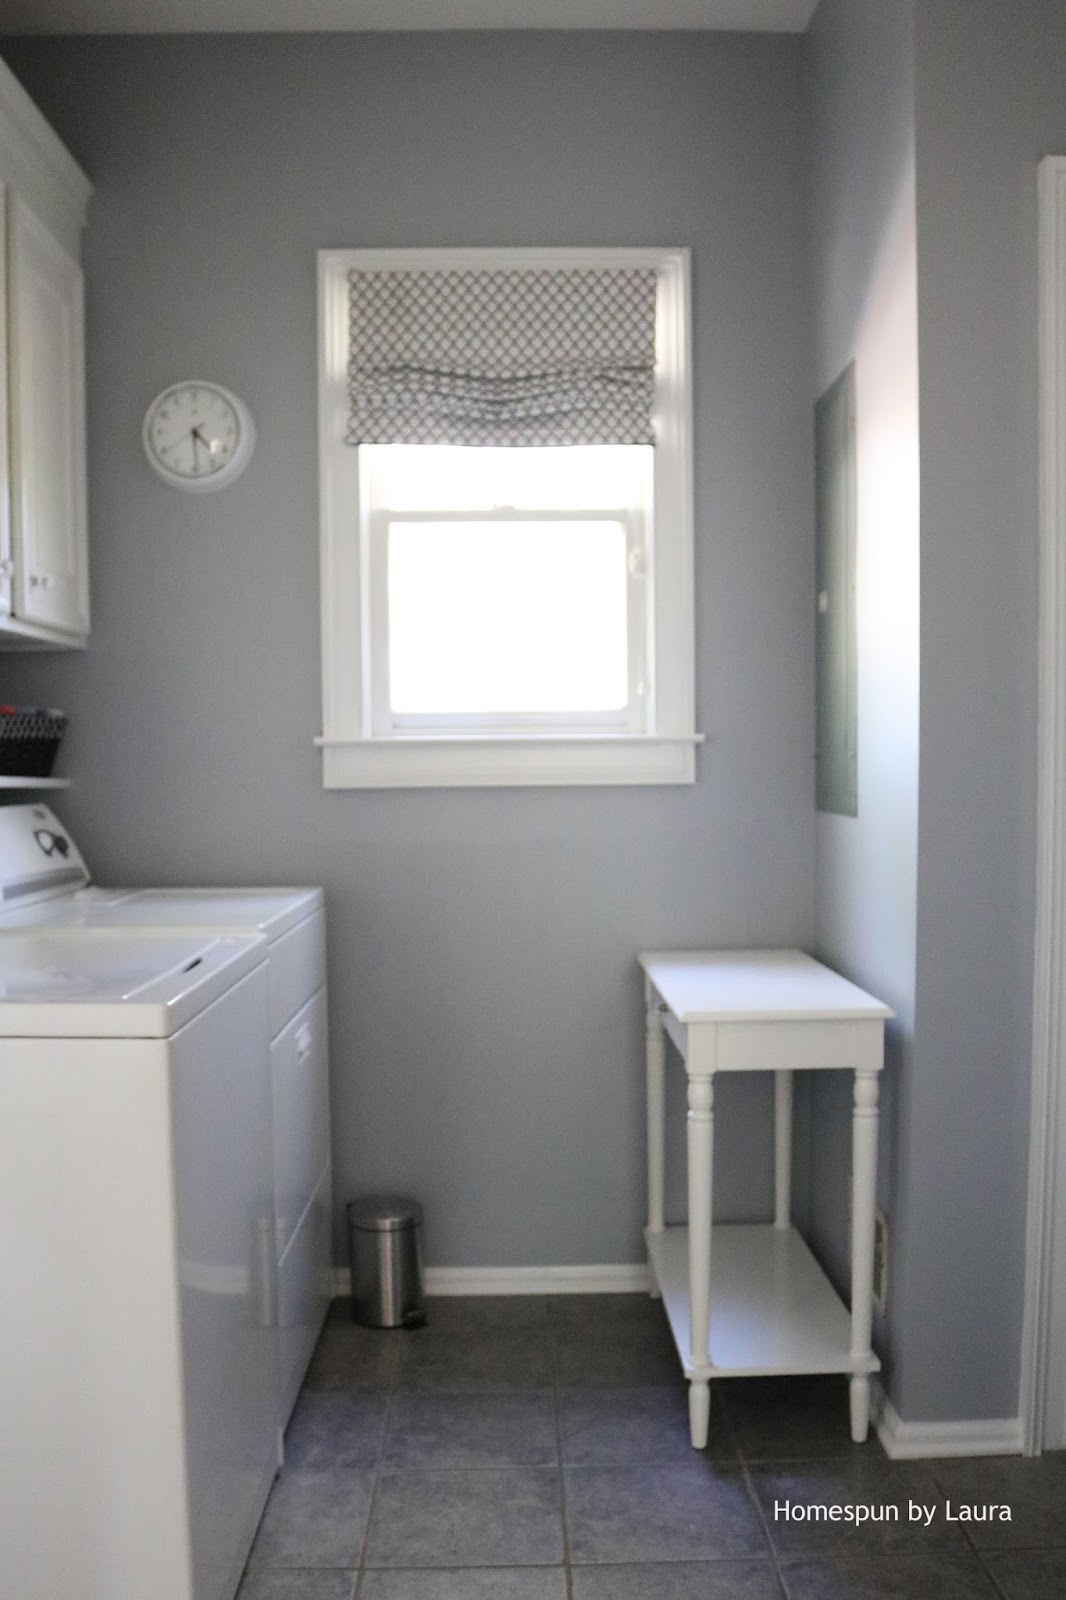 ... Homespun by Laura DIY Laundry Drying Rack and Fuse Box Cover